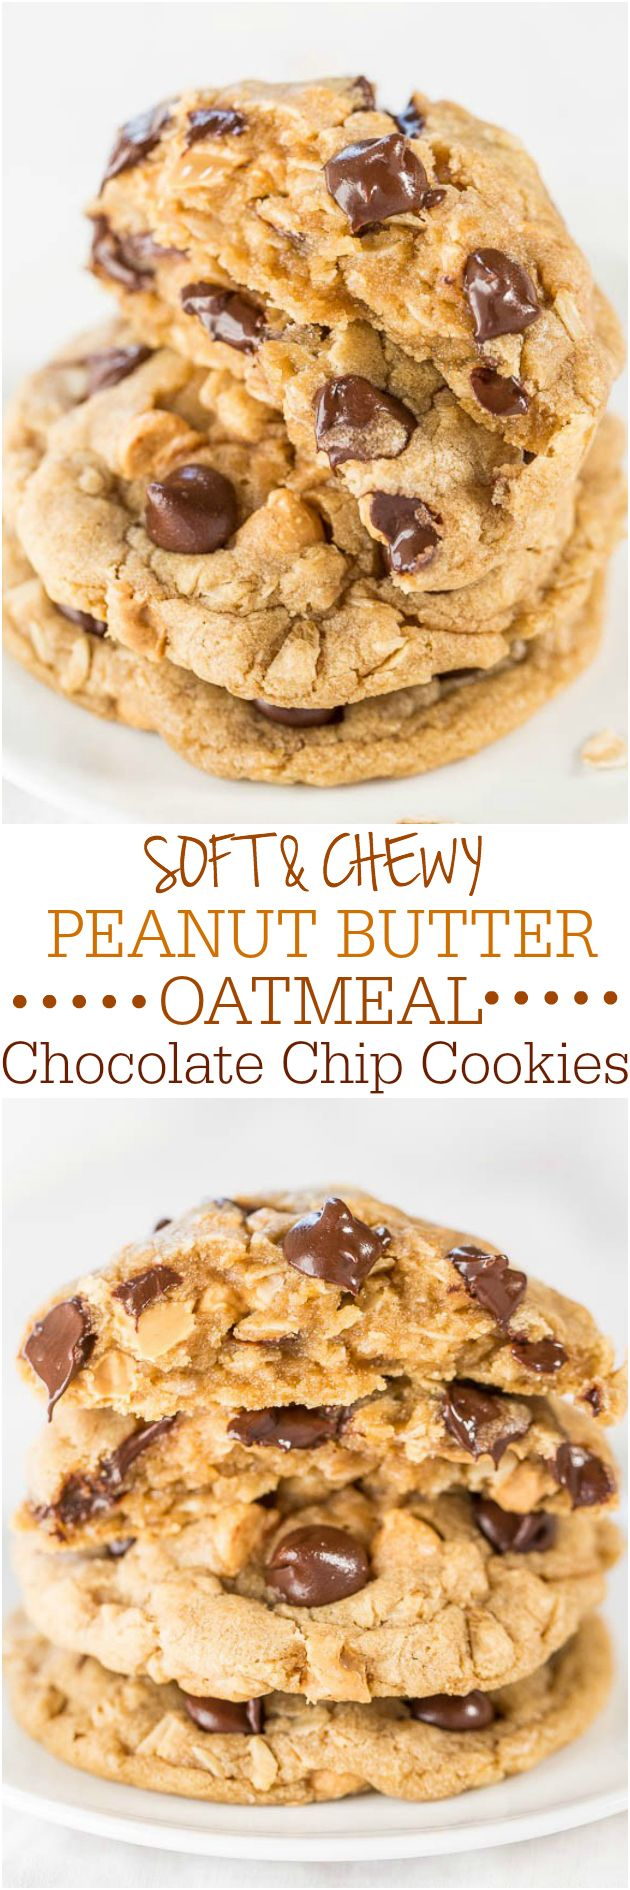 ideas about Easy Lactation Cookies on Pinterest | Lactation cookies ...